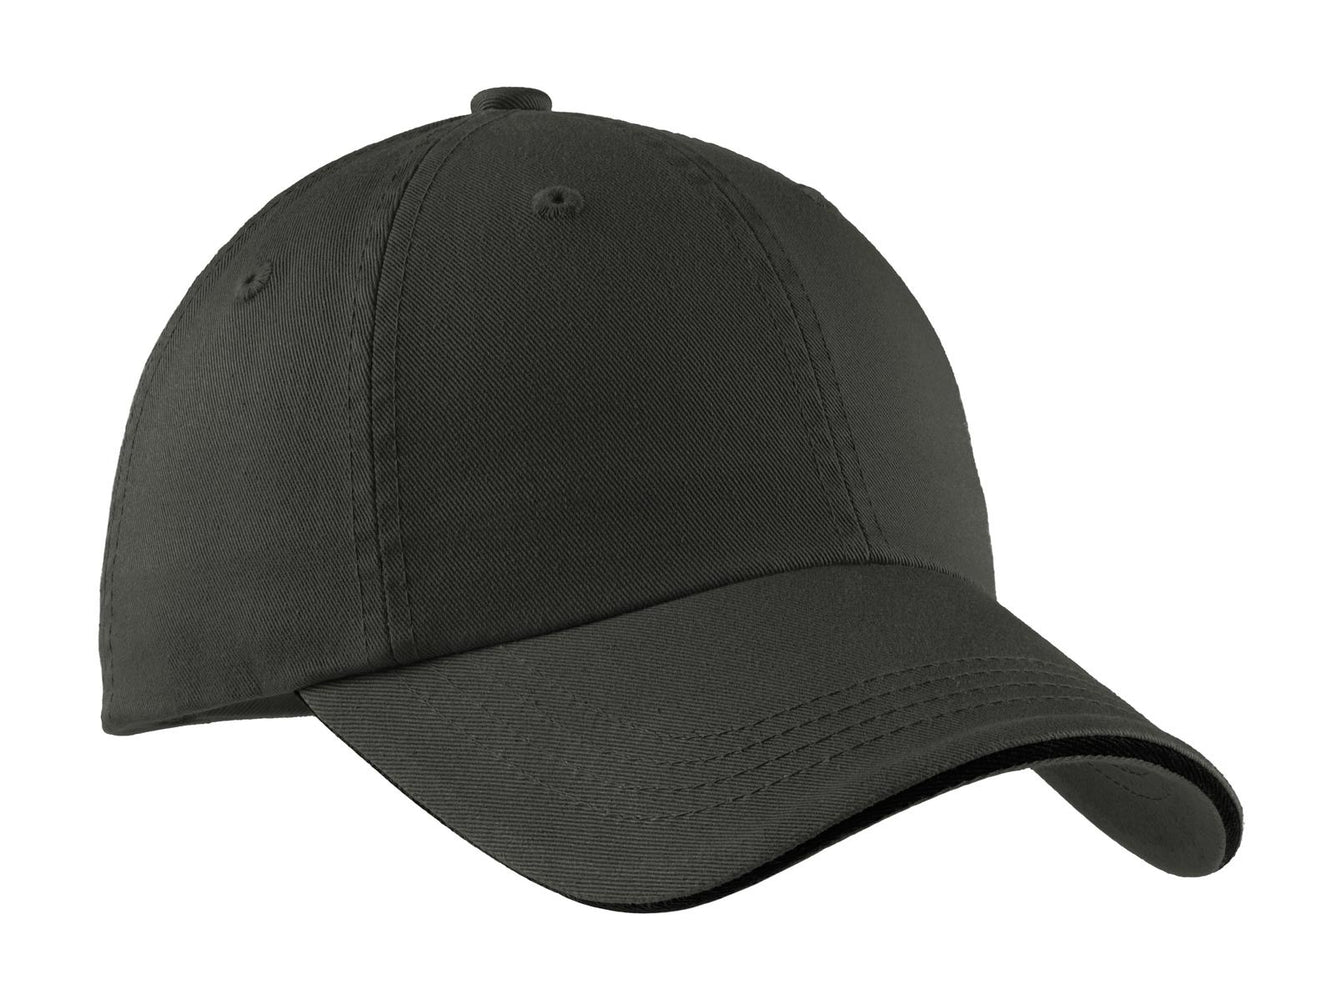 Port Authority® Sandwich Bill Cap with Striped Closure.  C830 (Charcoal/Black)